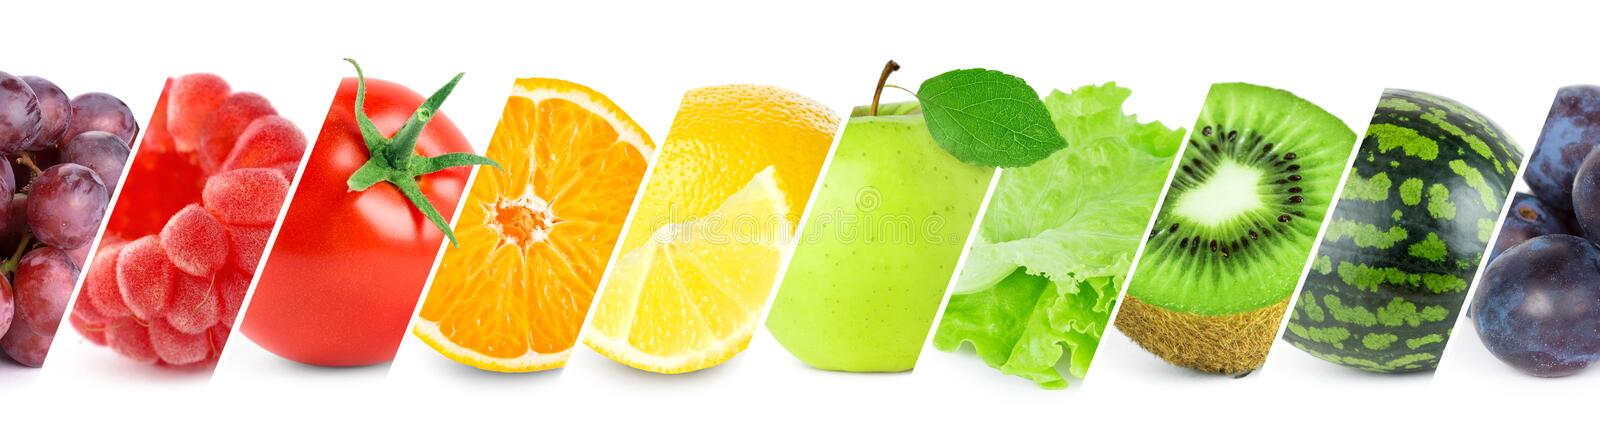 Fresh food. Collection of fresh fruits, vegetables and berries on white background royalty free stock photos